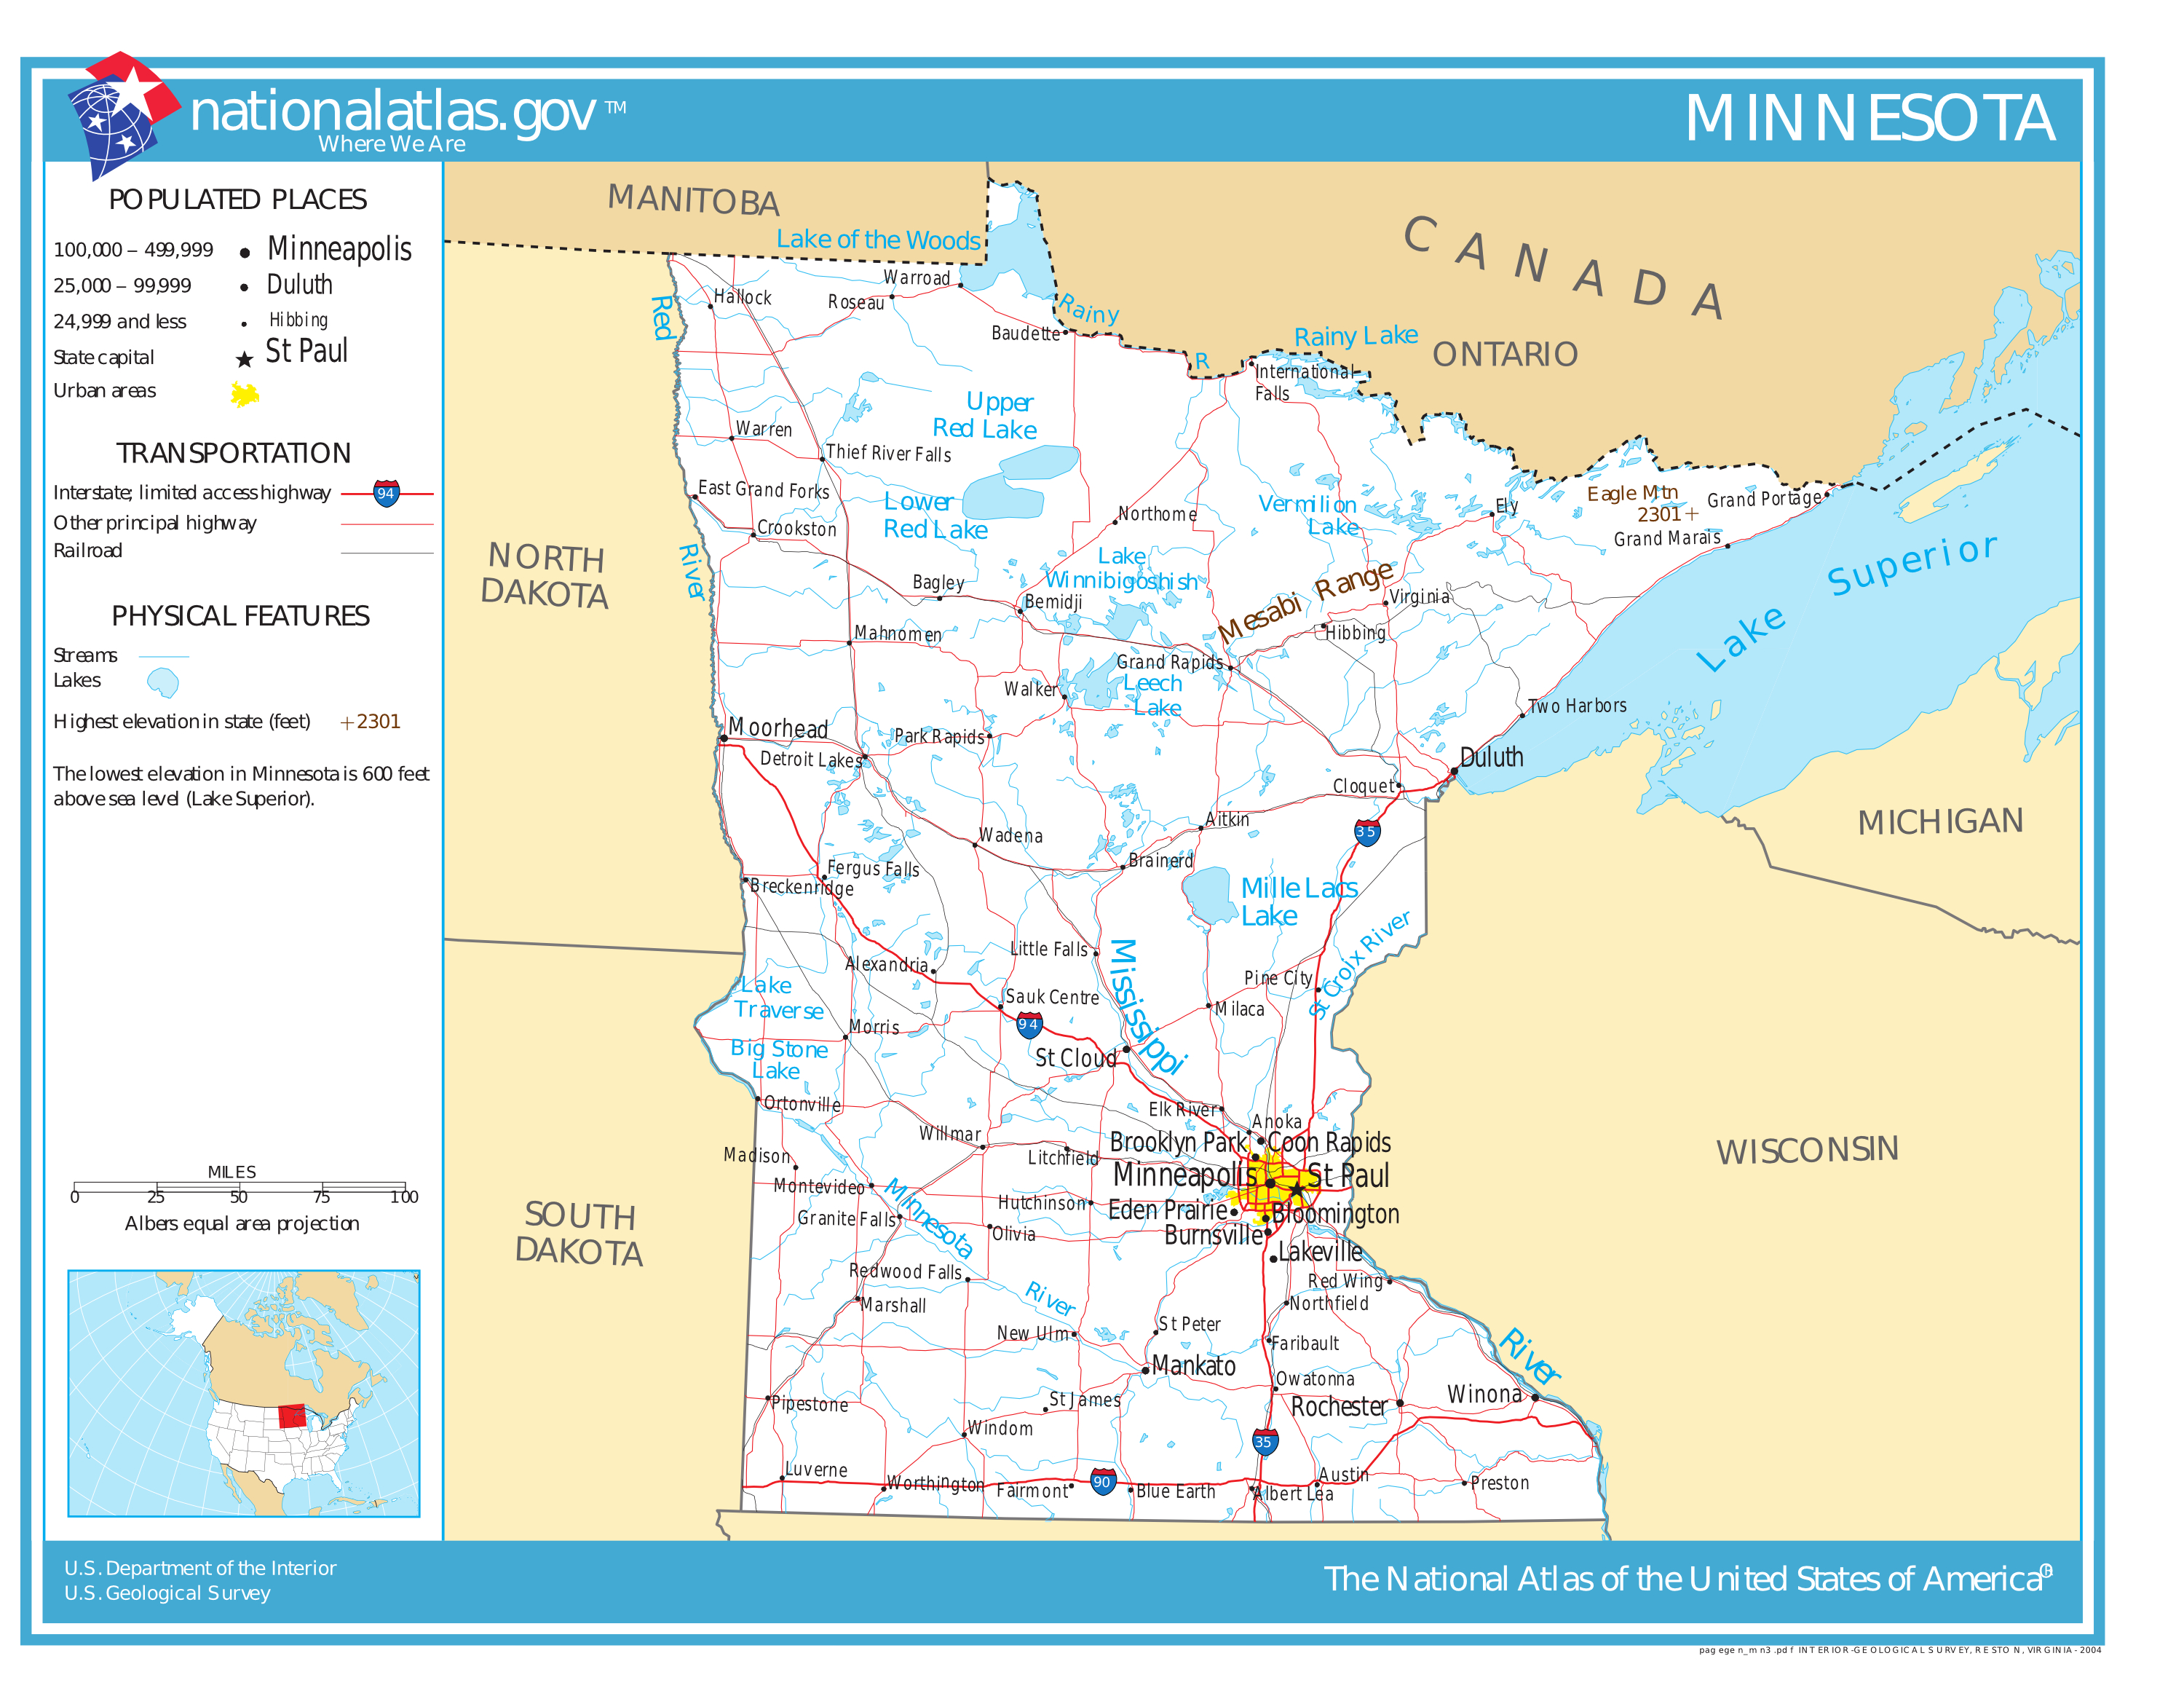 Geography Of Minnesota - Wikipedia - Printable Lake Minnetonka Map